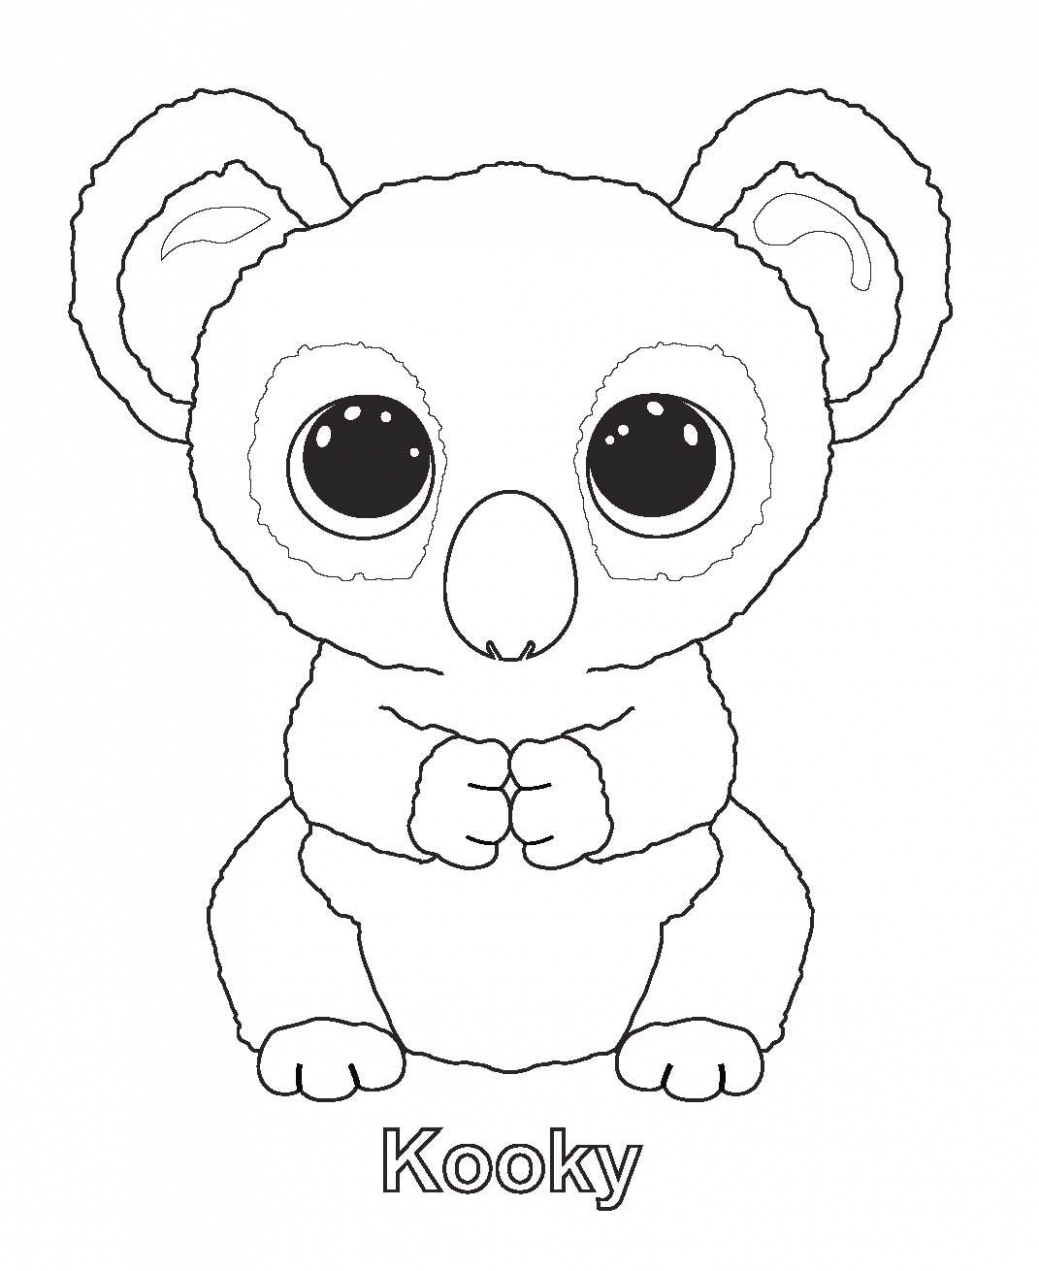 ty unicorn coloring pages 31 fabulous beanie boo coloring pages unicorn image ideas coloring ty pages unicorn